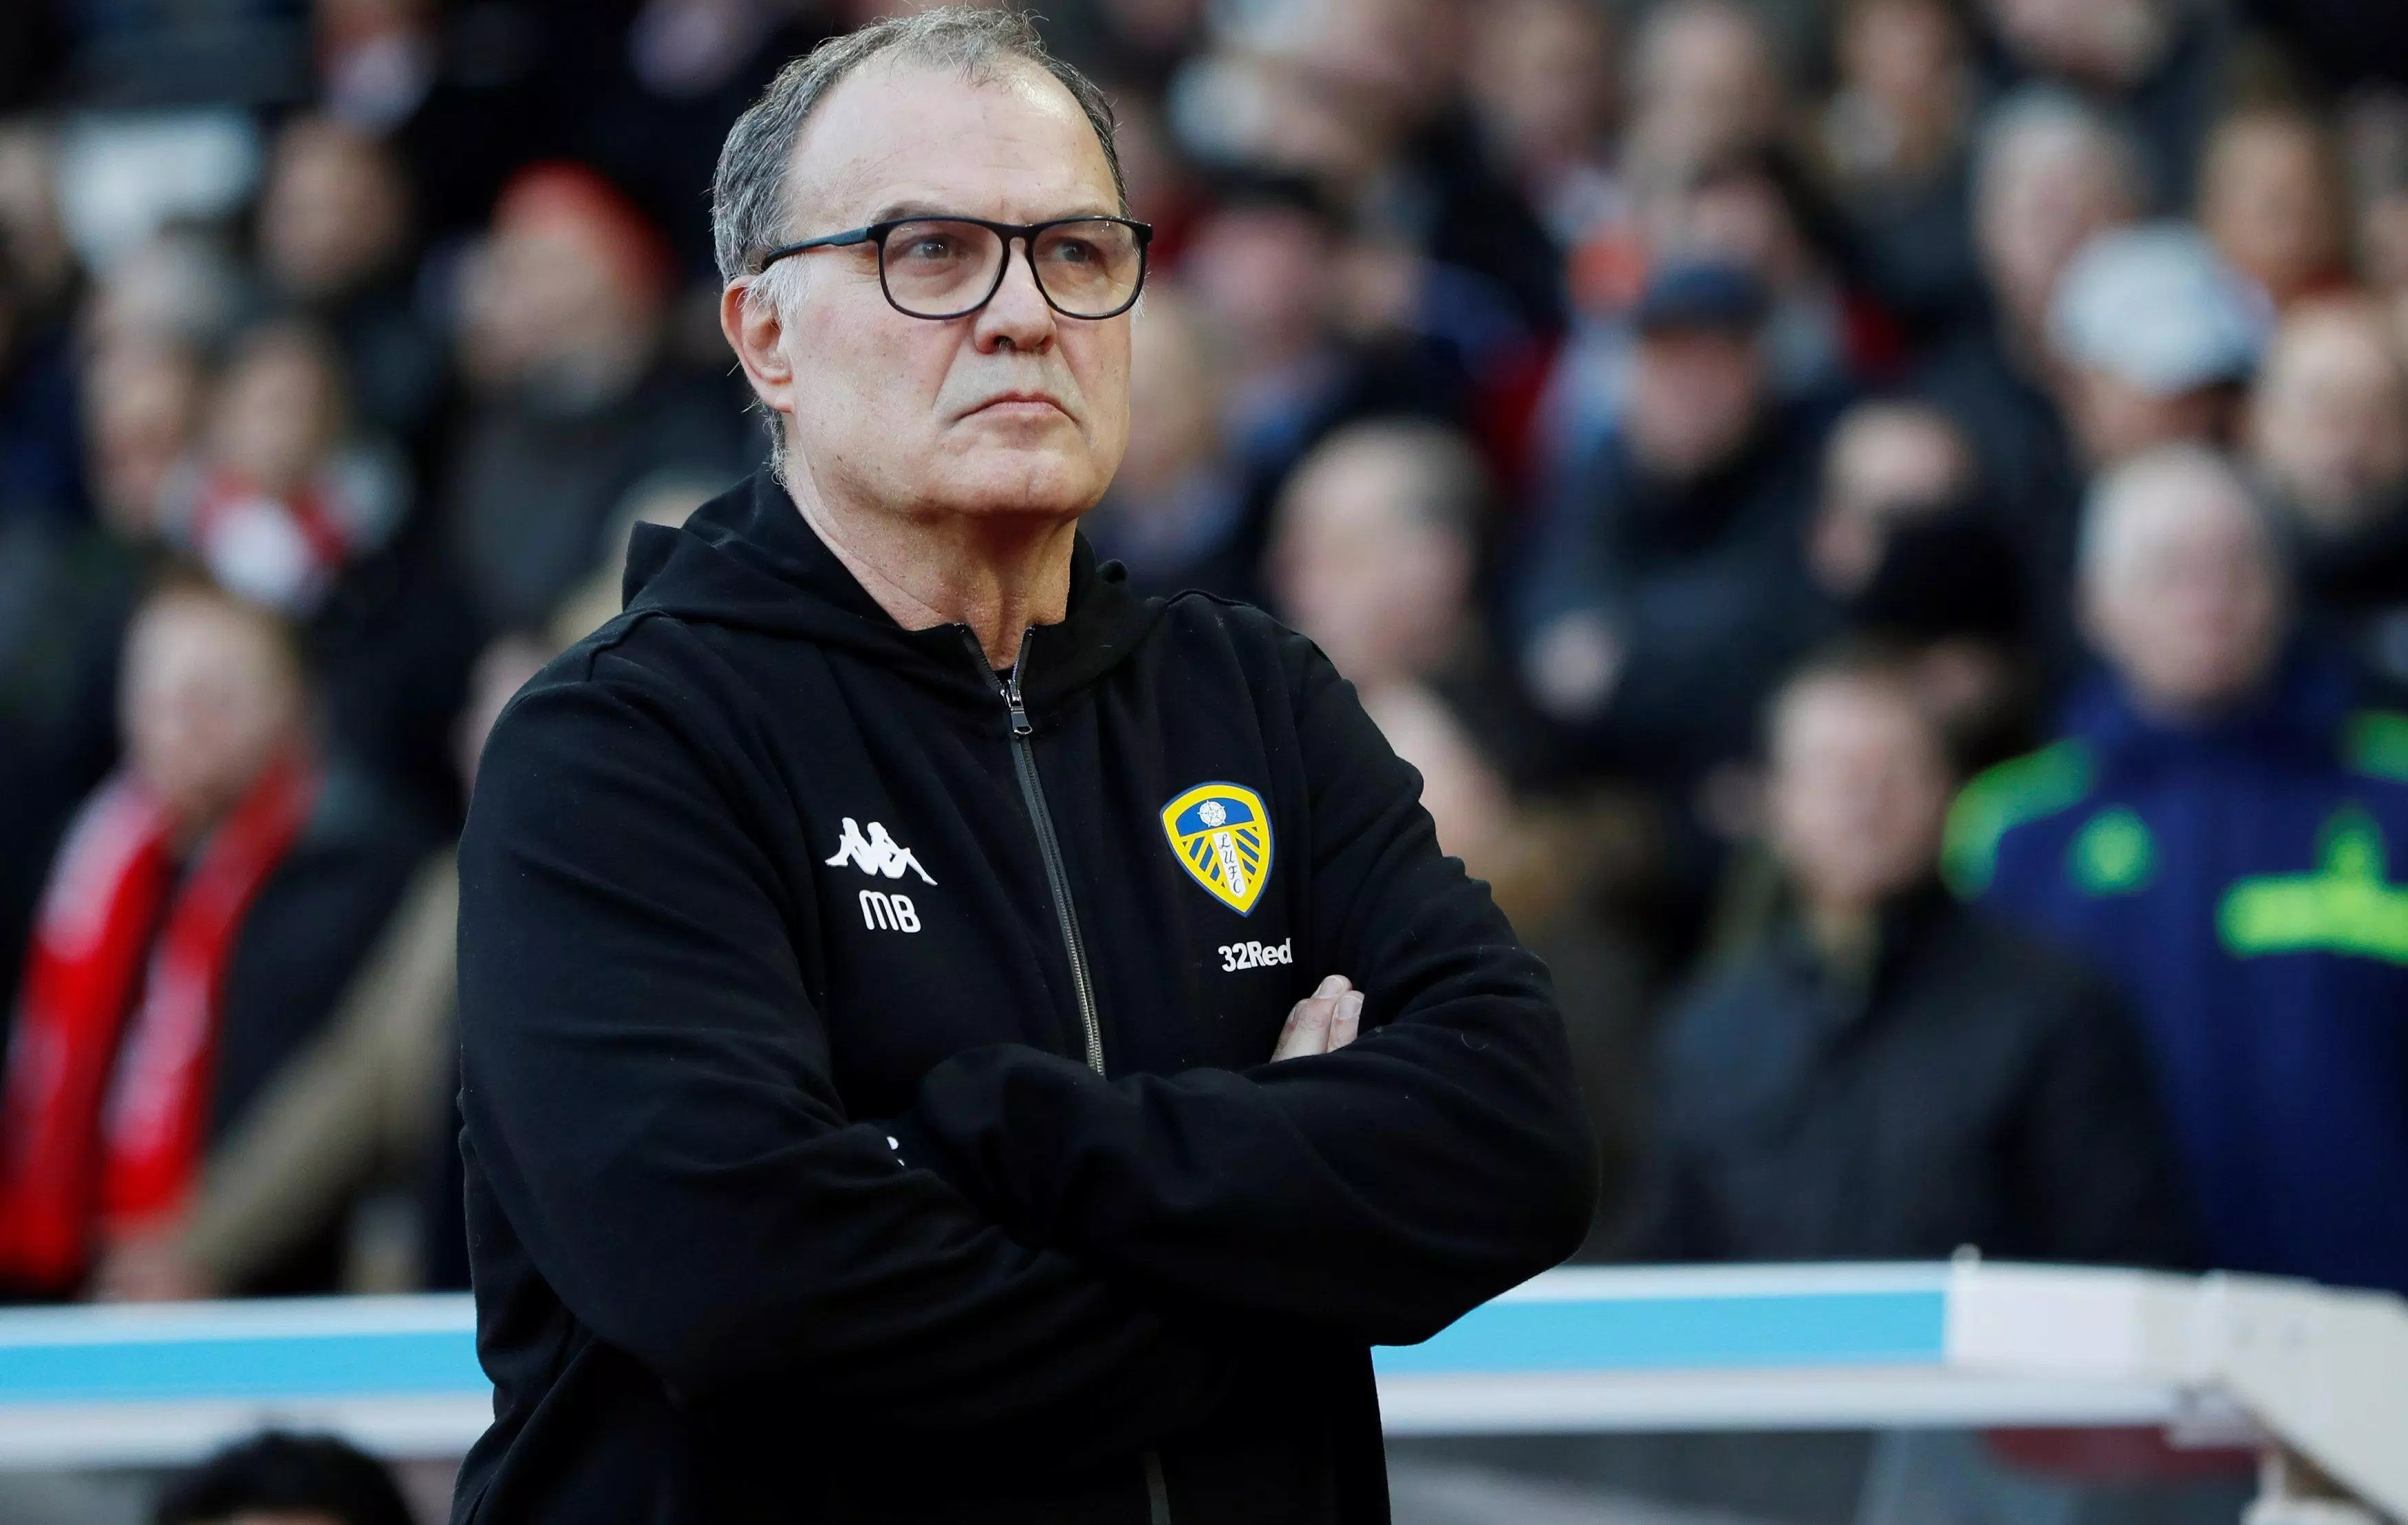 Le documentaire sur le Leeds United de Marcelo Bielsa est disponible